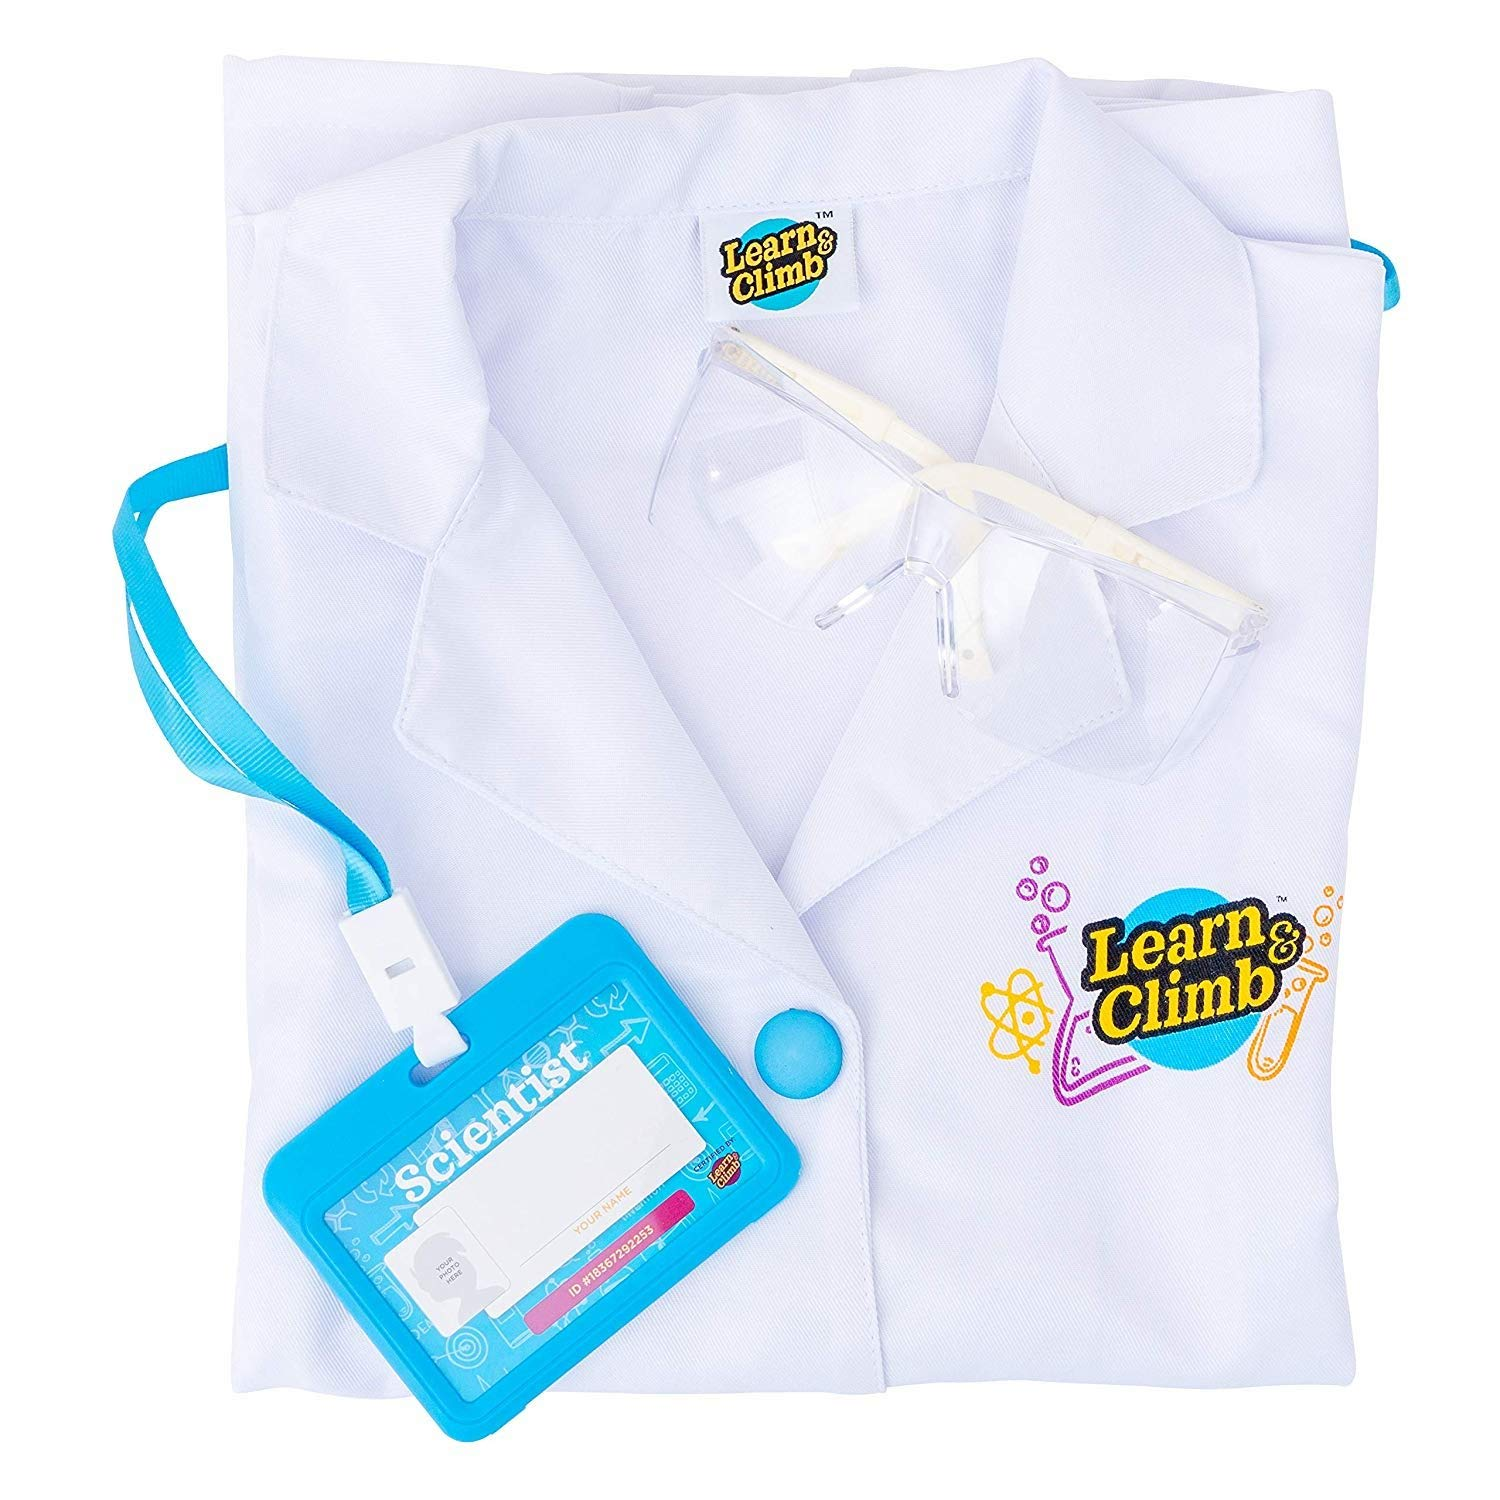 Lab Coat for Kids - Children's lab Coat with Goggles & Personalized ID Card. Great Toy for Science Projects & Experiments